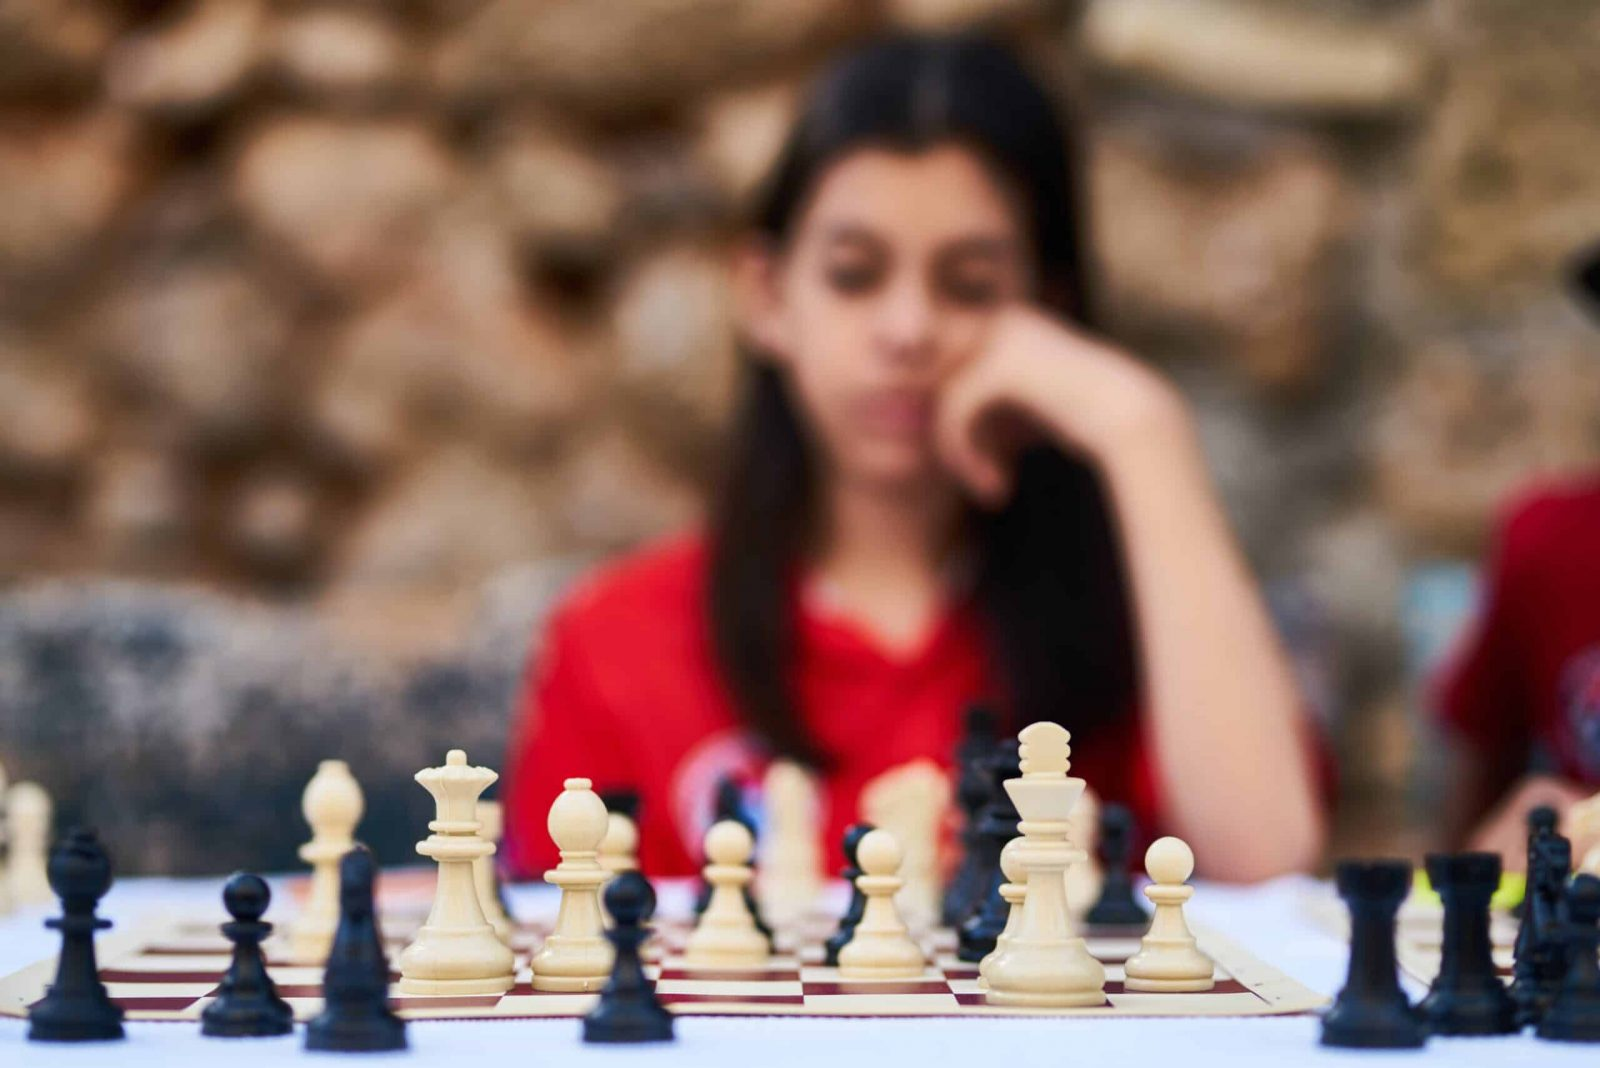 Image of a person playing chess.